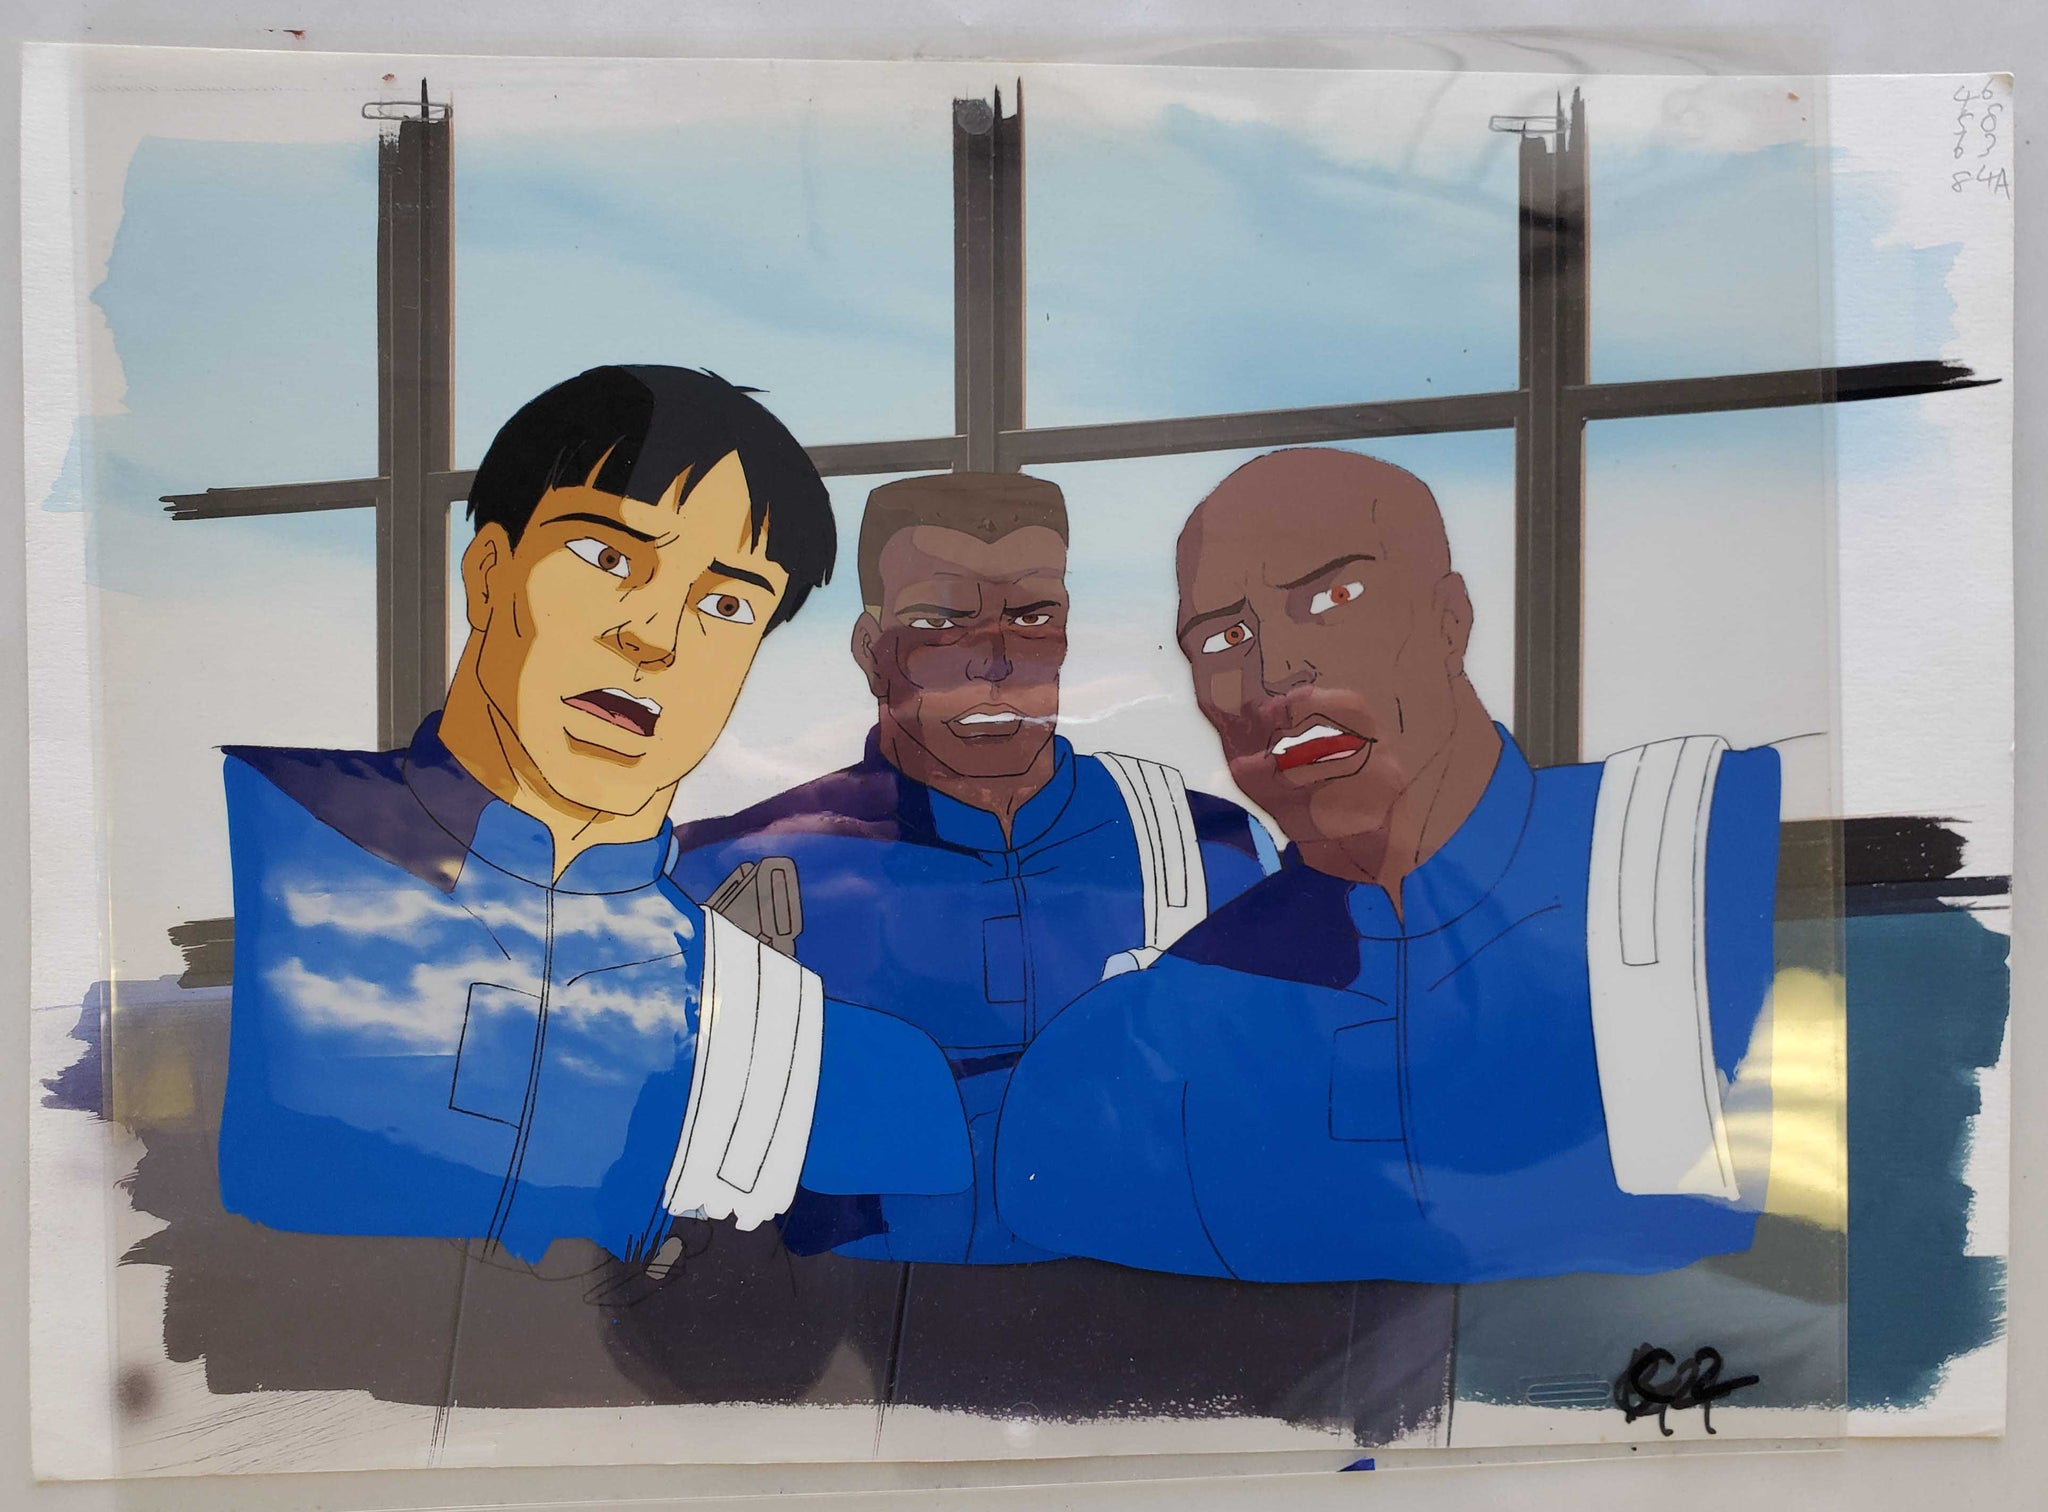 Hulk 13 Gabriel Jones and S.H.I.E.L.D. Members (EX0468) - Animation Legends